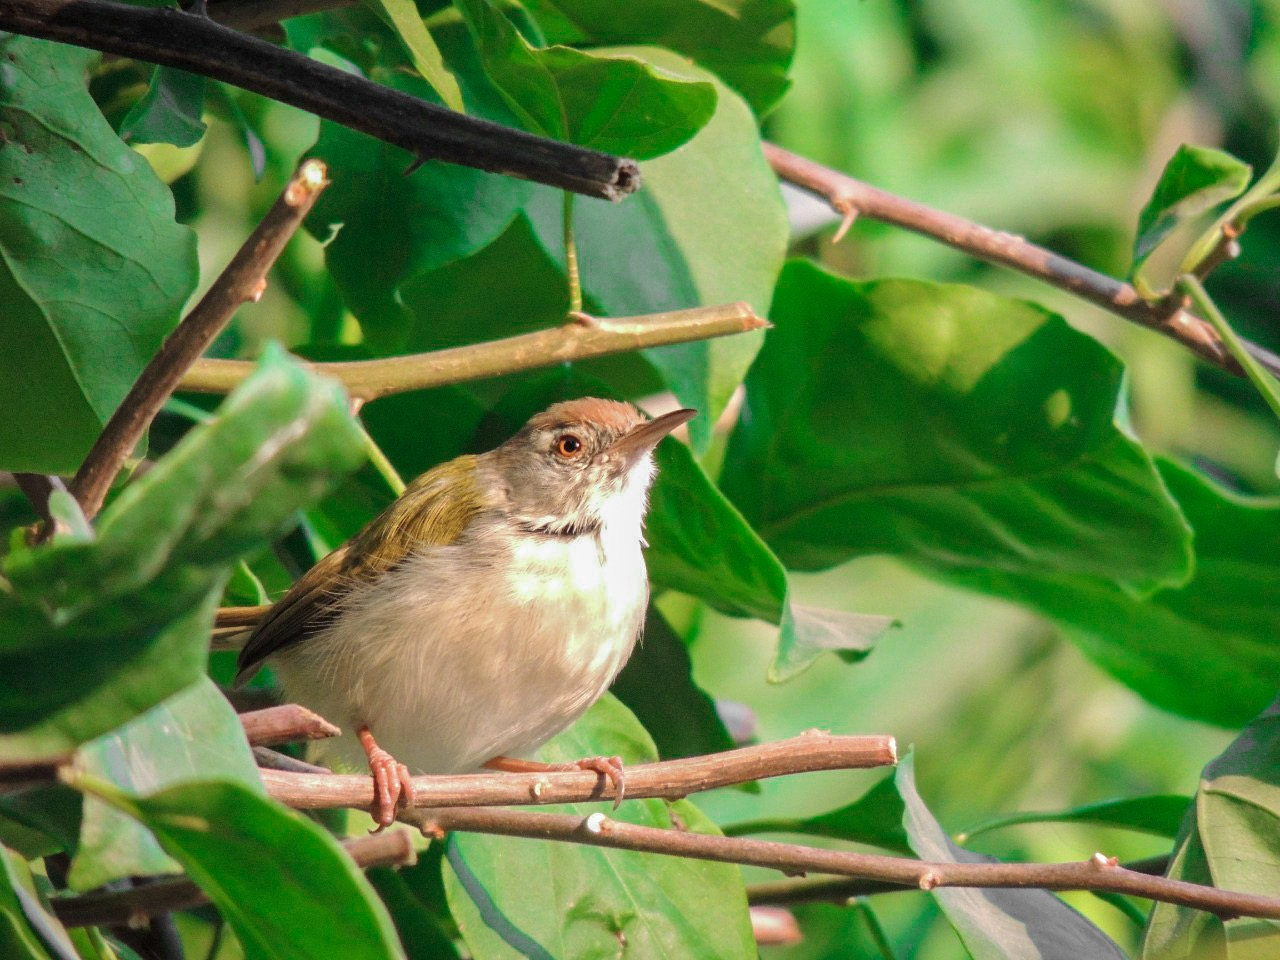 Small Indian bird on a plant